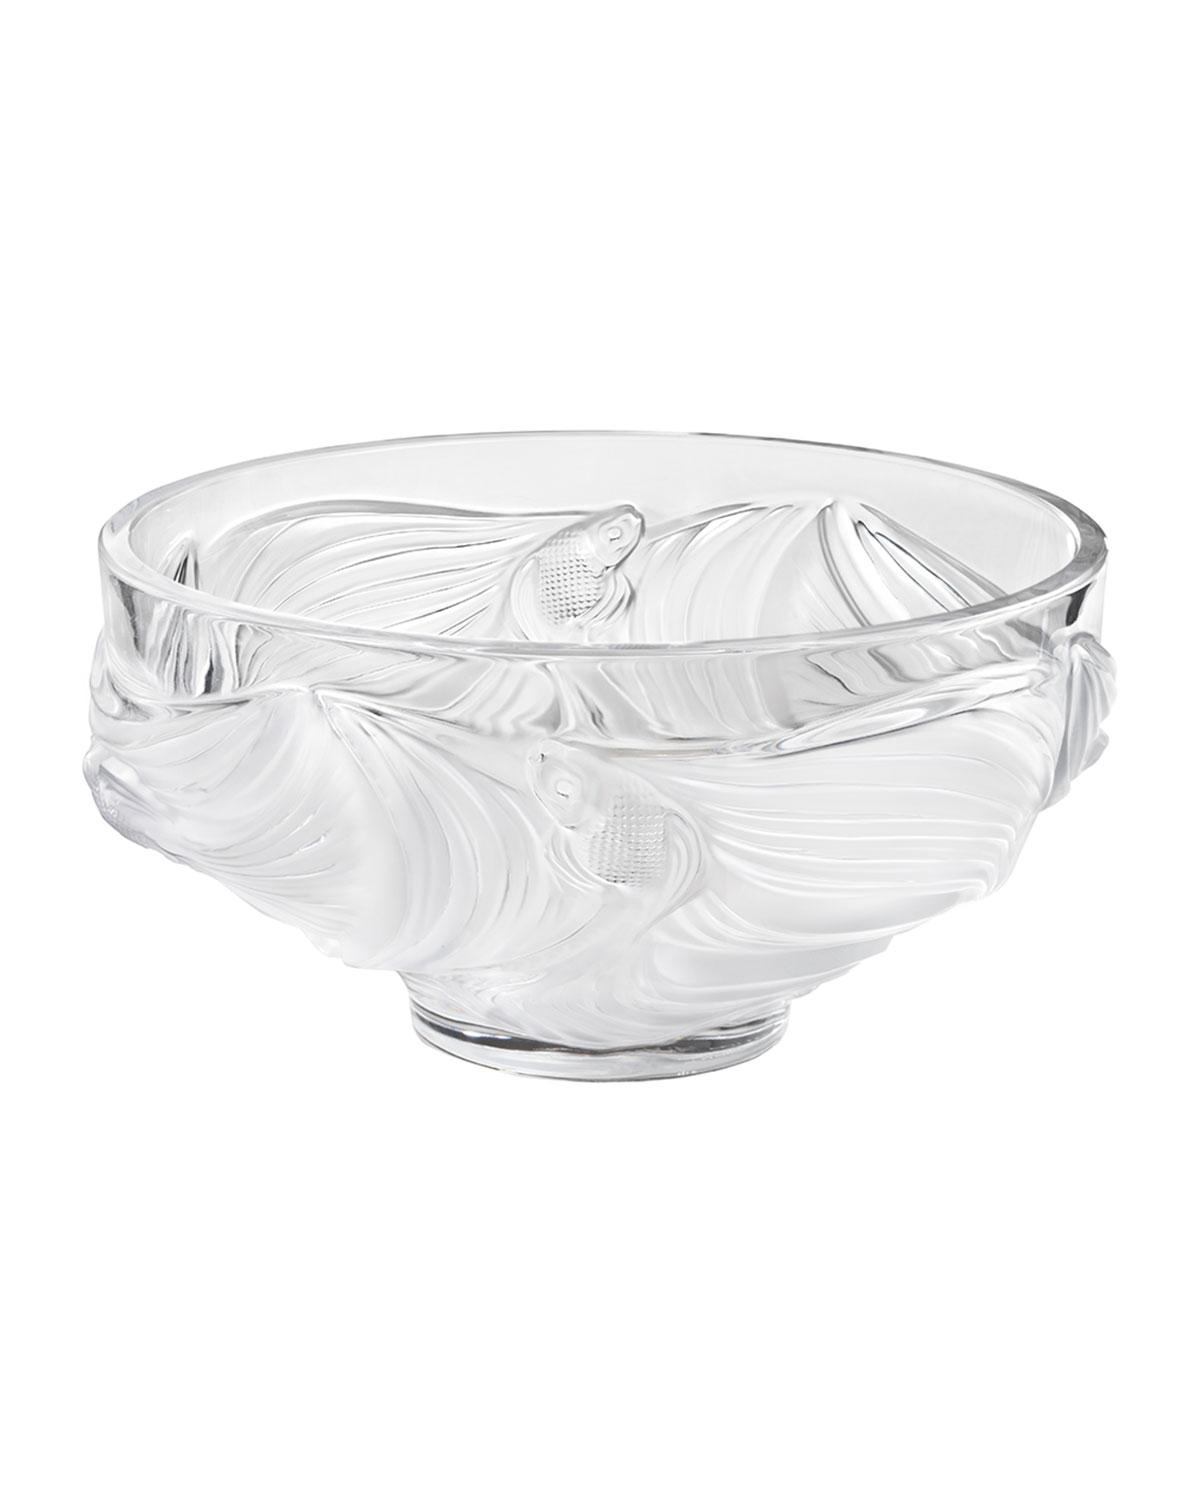 Lalique Dinnerwares POISSONS BOWL, CLEAR